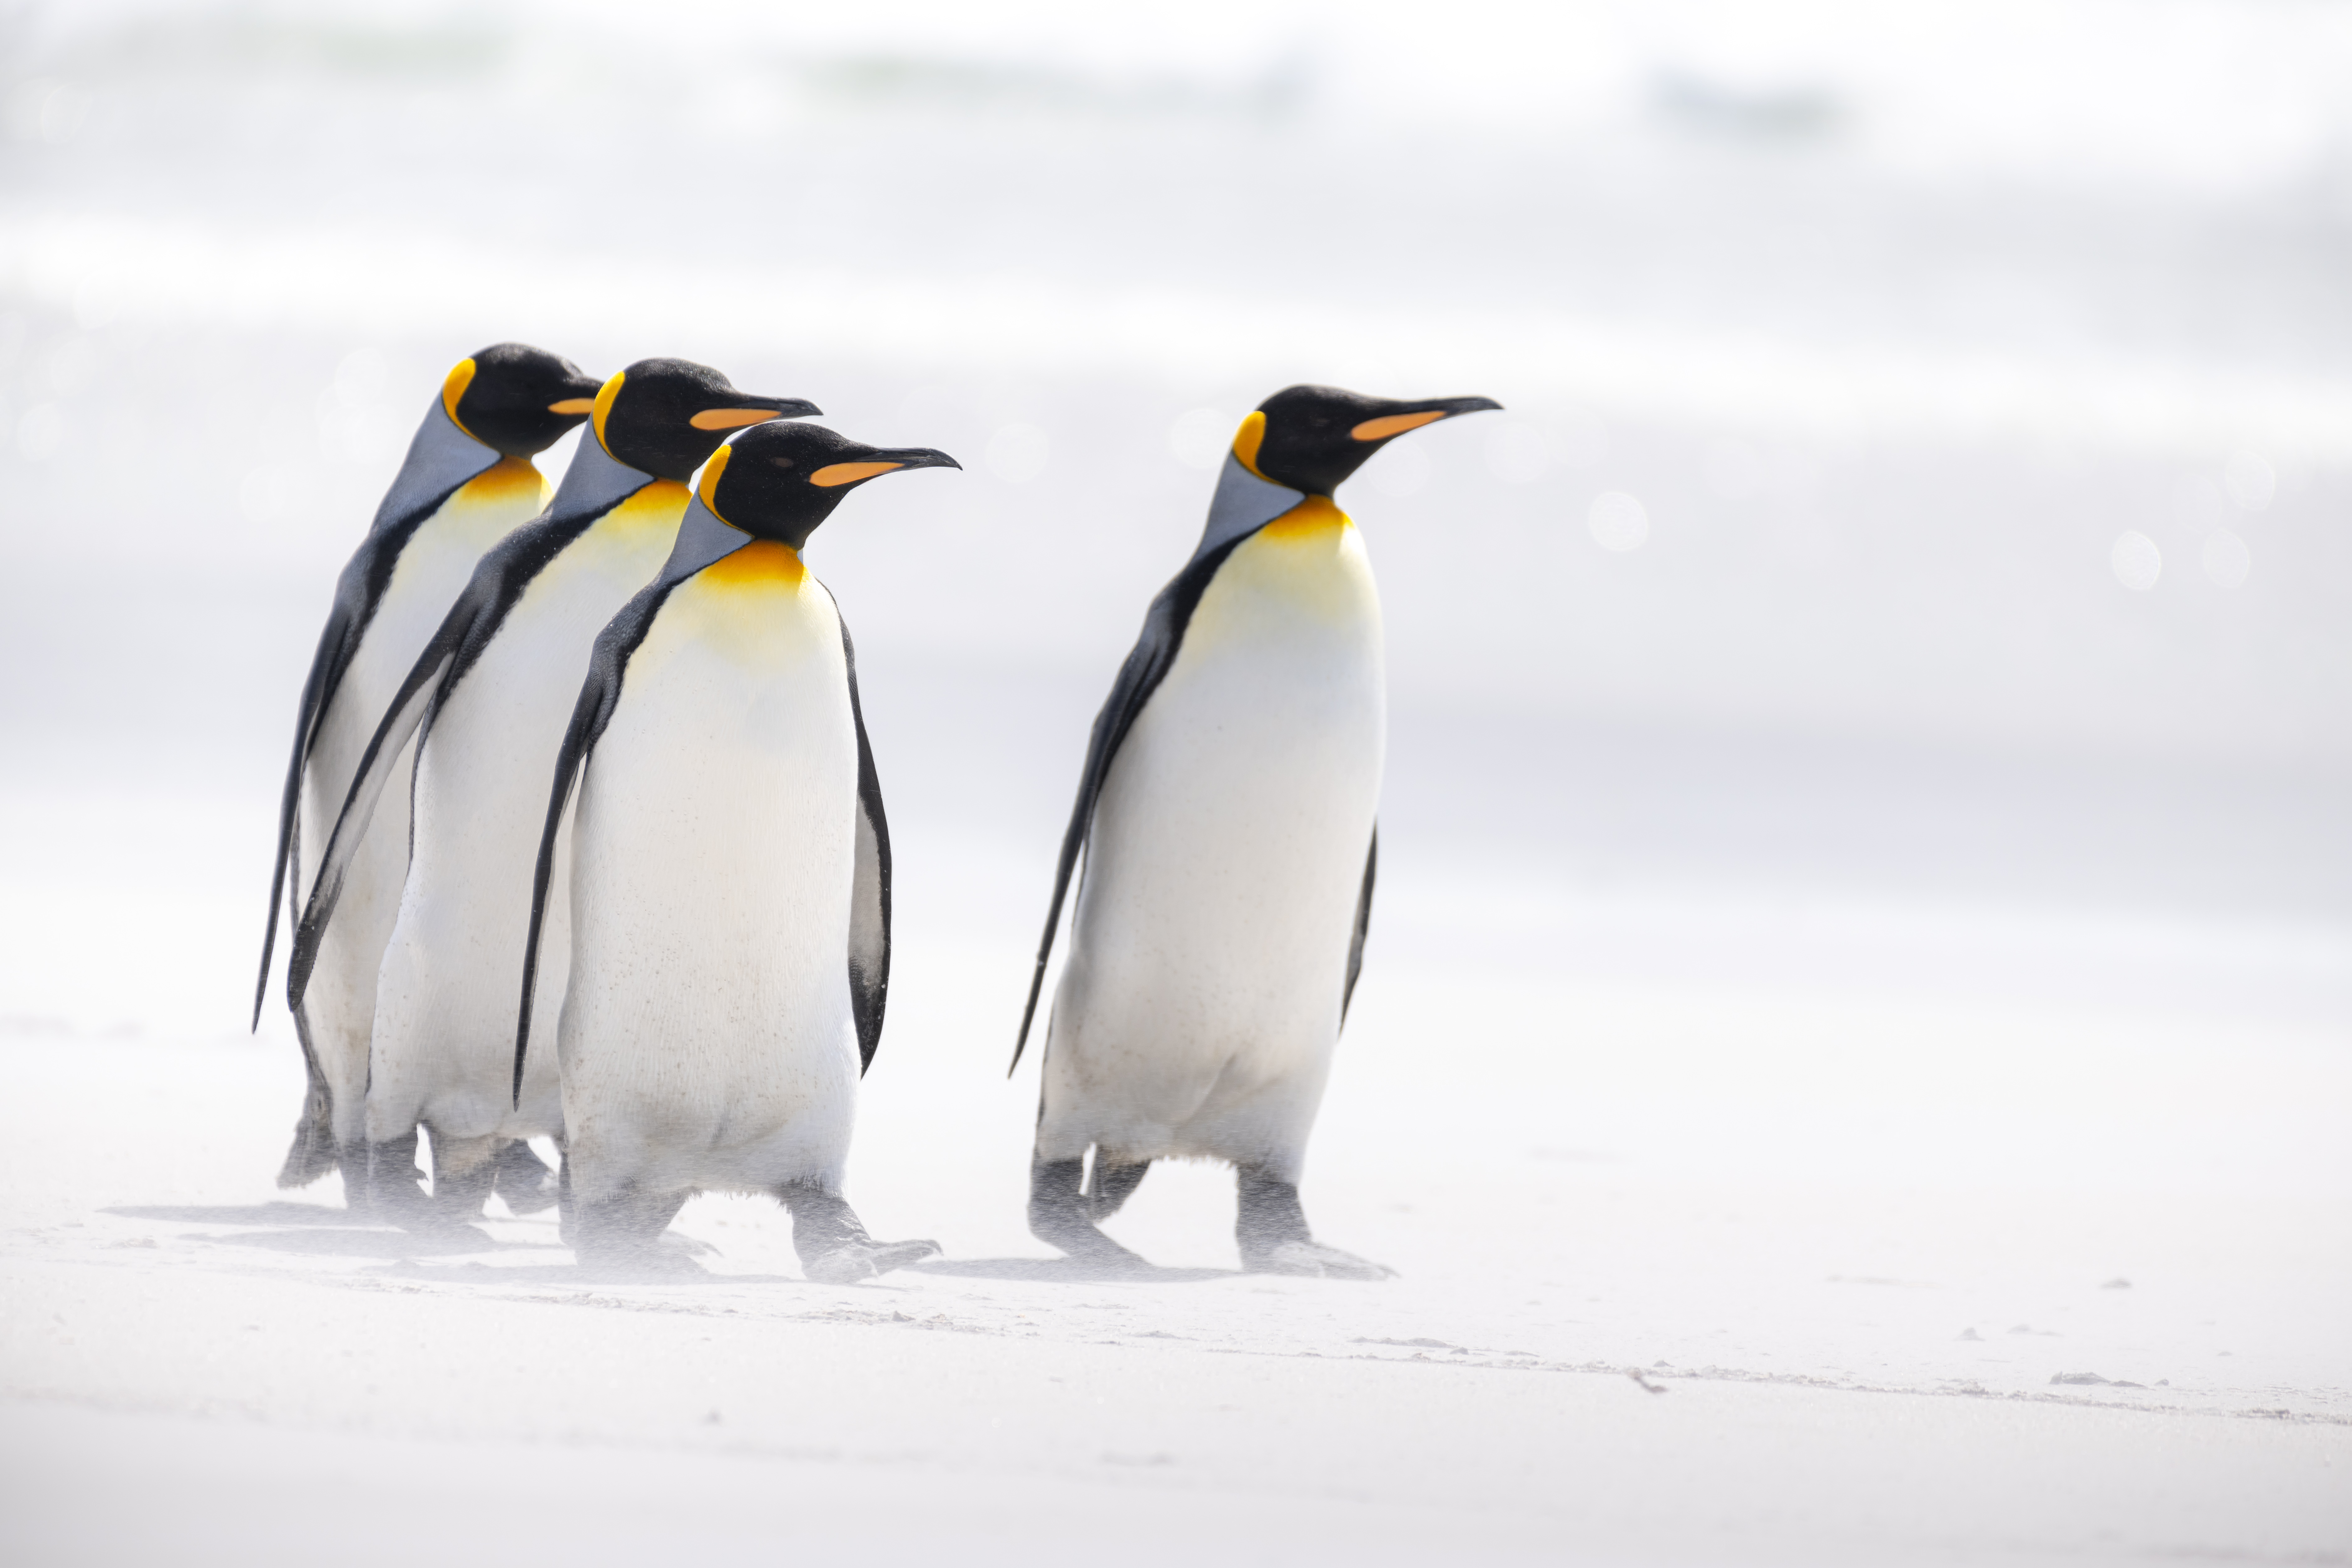 145151 download wallpaper Animals, Birds, Pinguins, Wildlife, Arctic, King Penguins screensavers and pictures for free